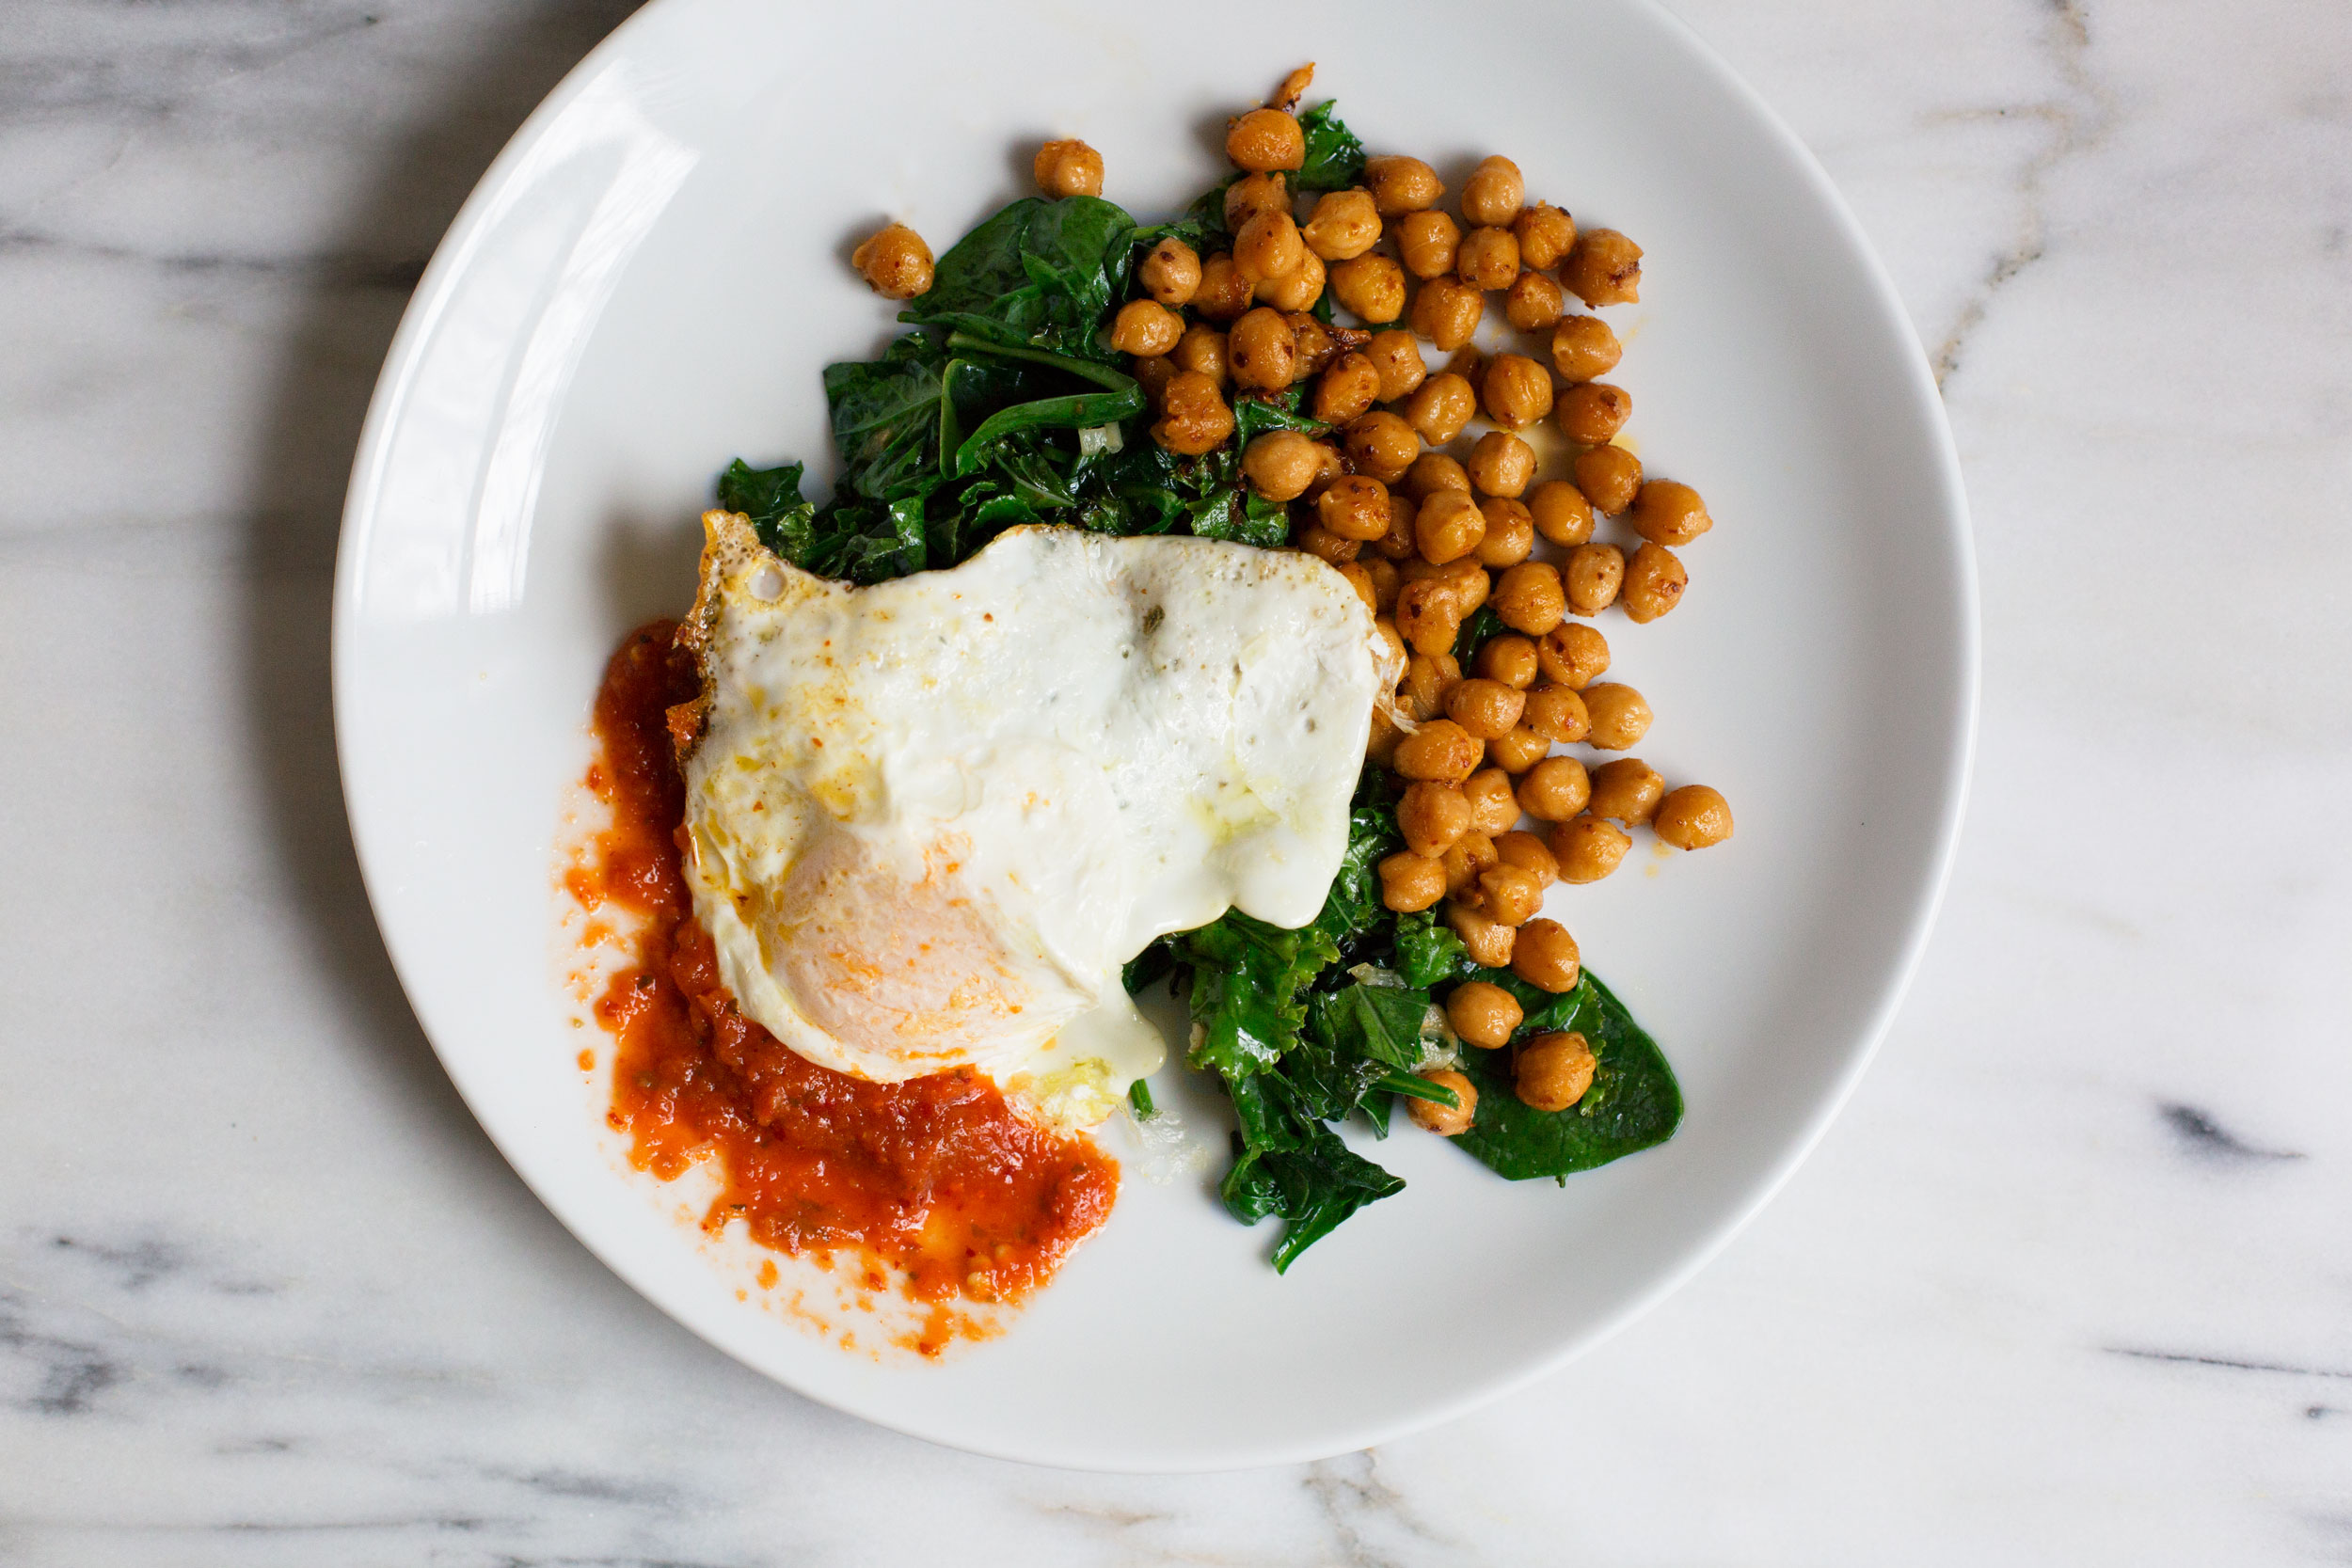 Aleppo Chickpeas with Kale and a Fried Egg